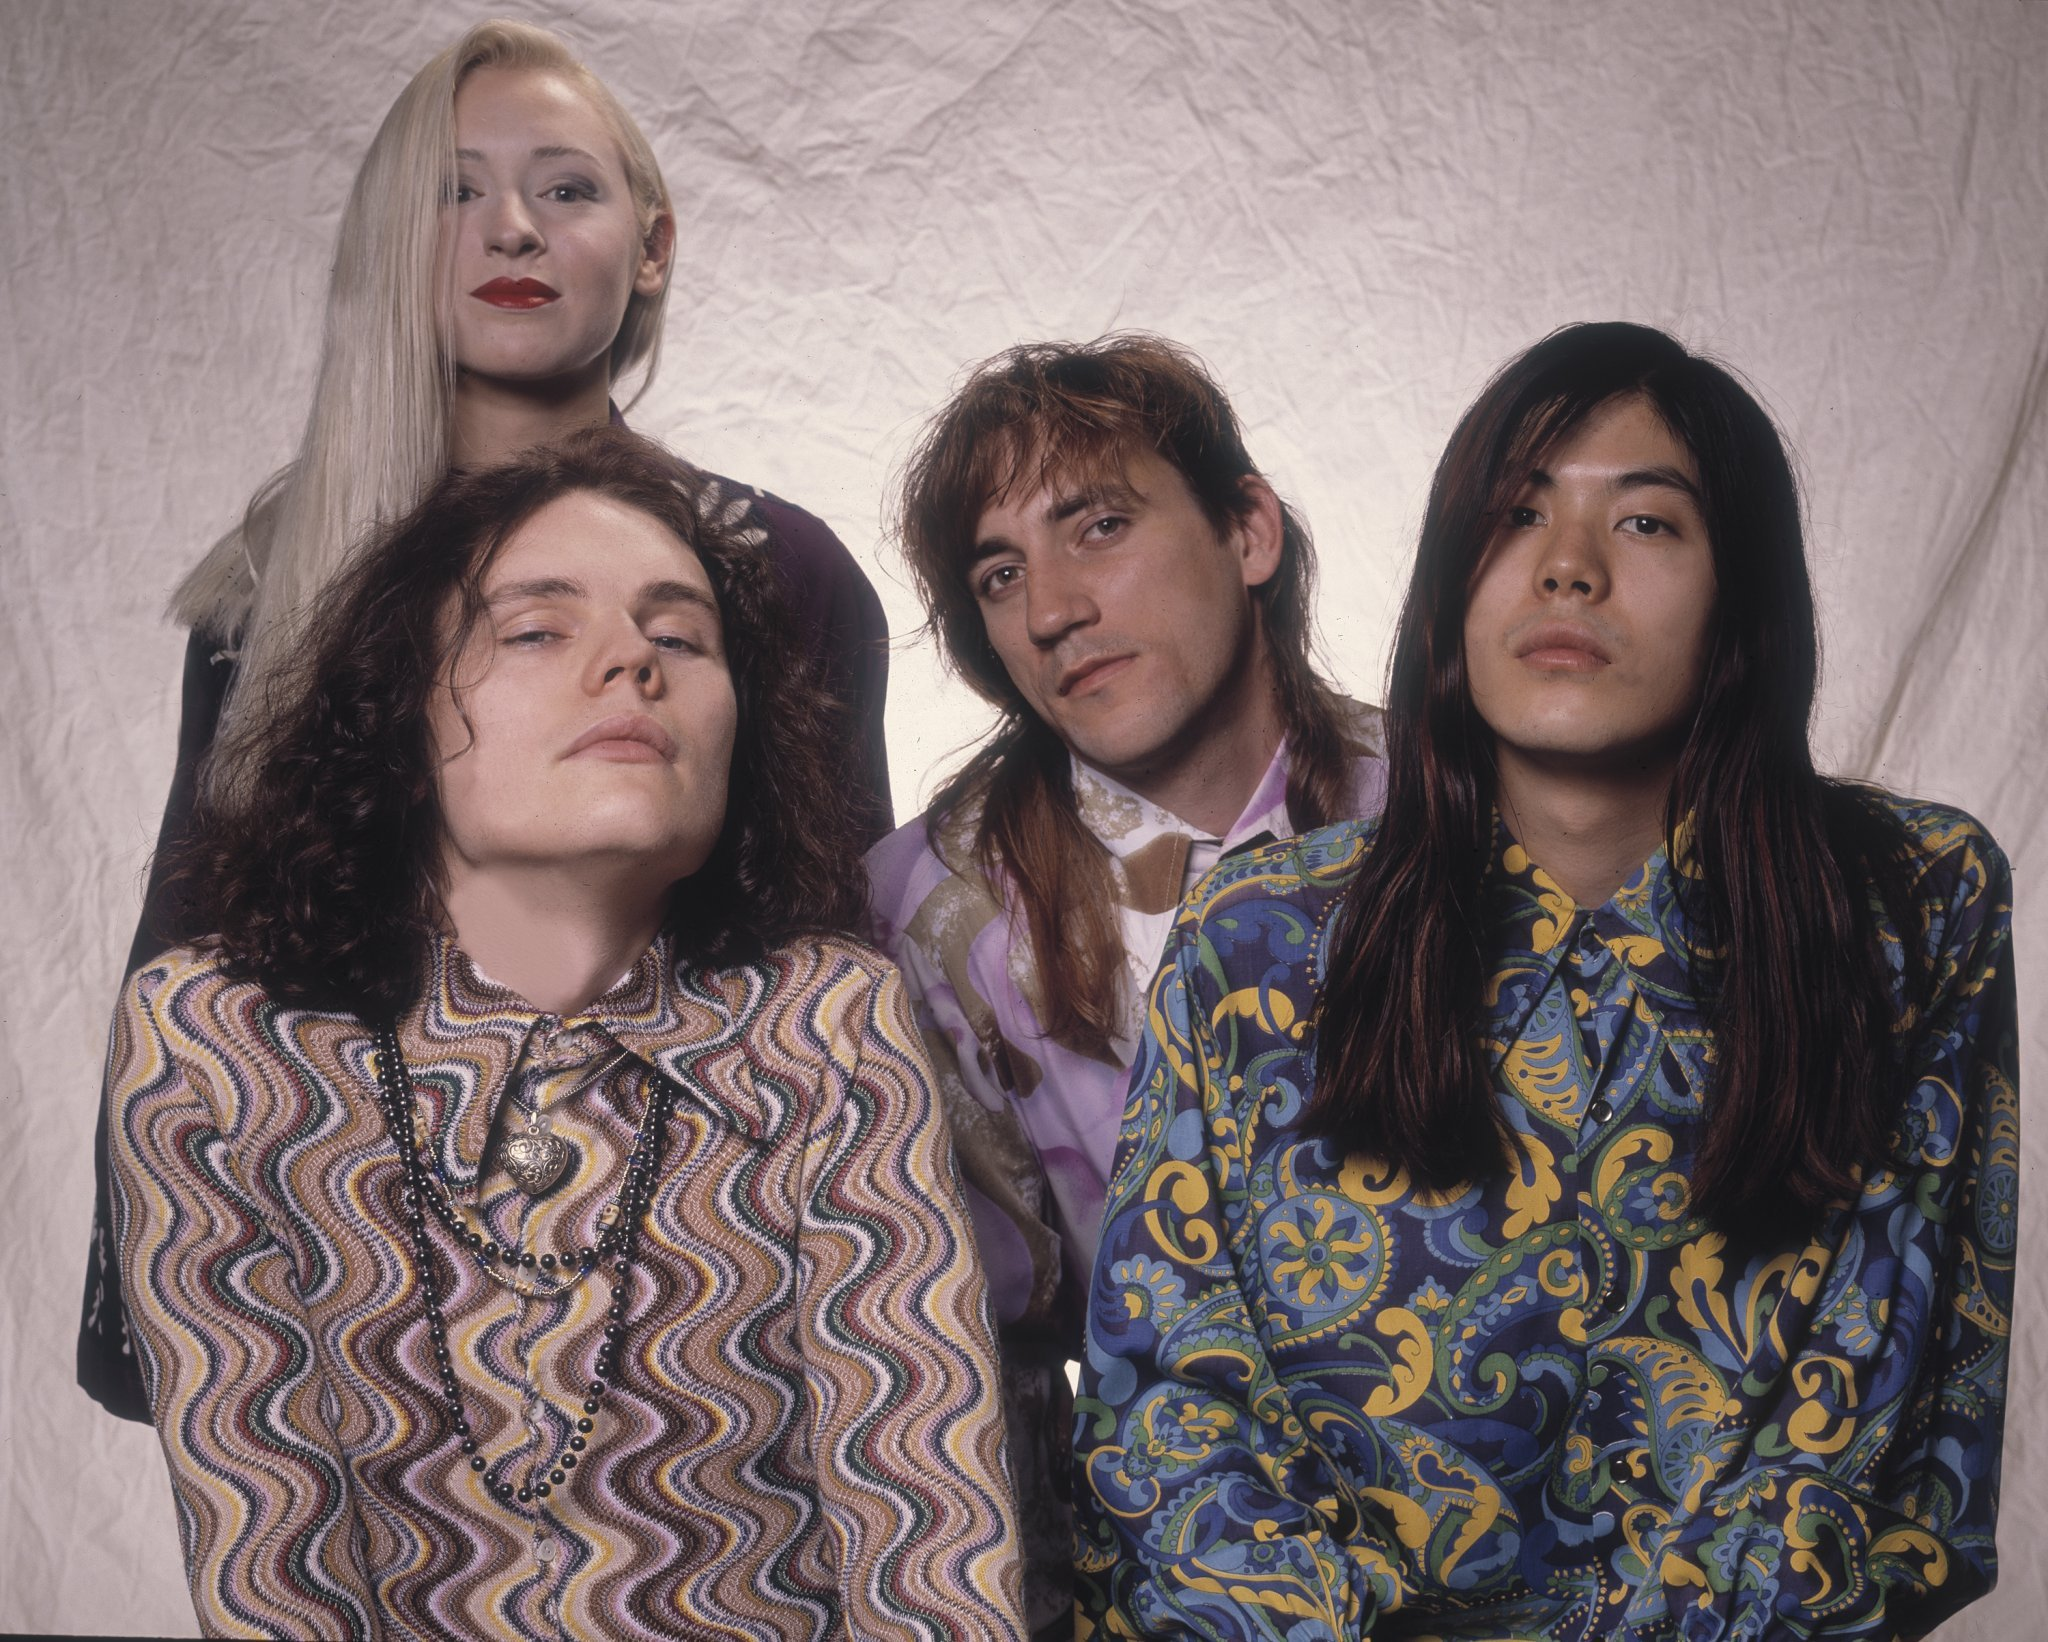 What we said about Smashing Pumpkins when they first hit the scene